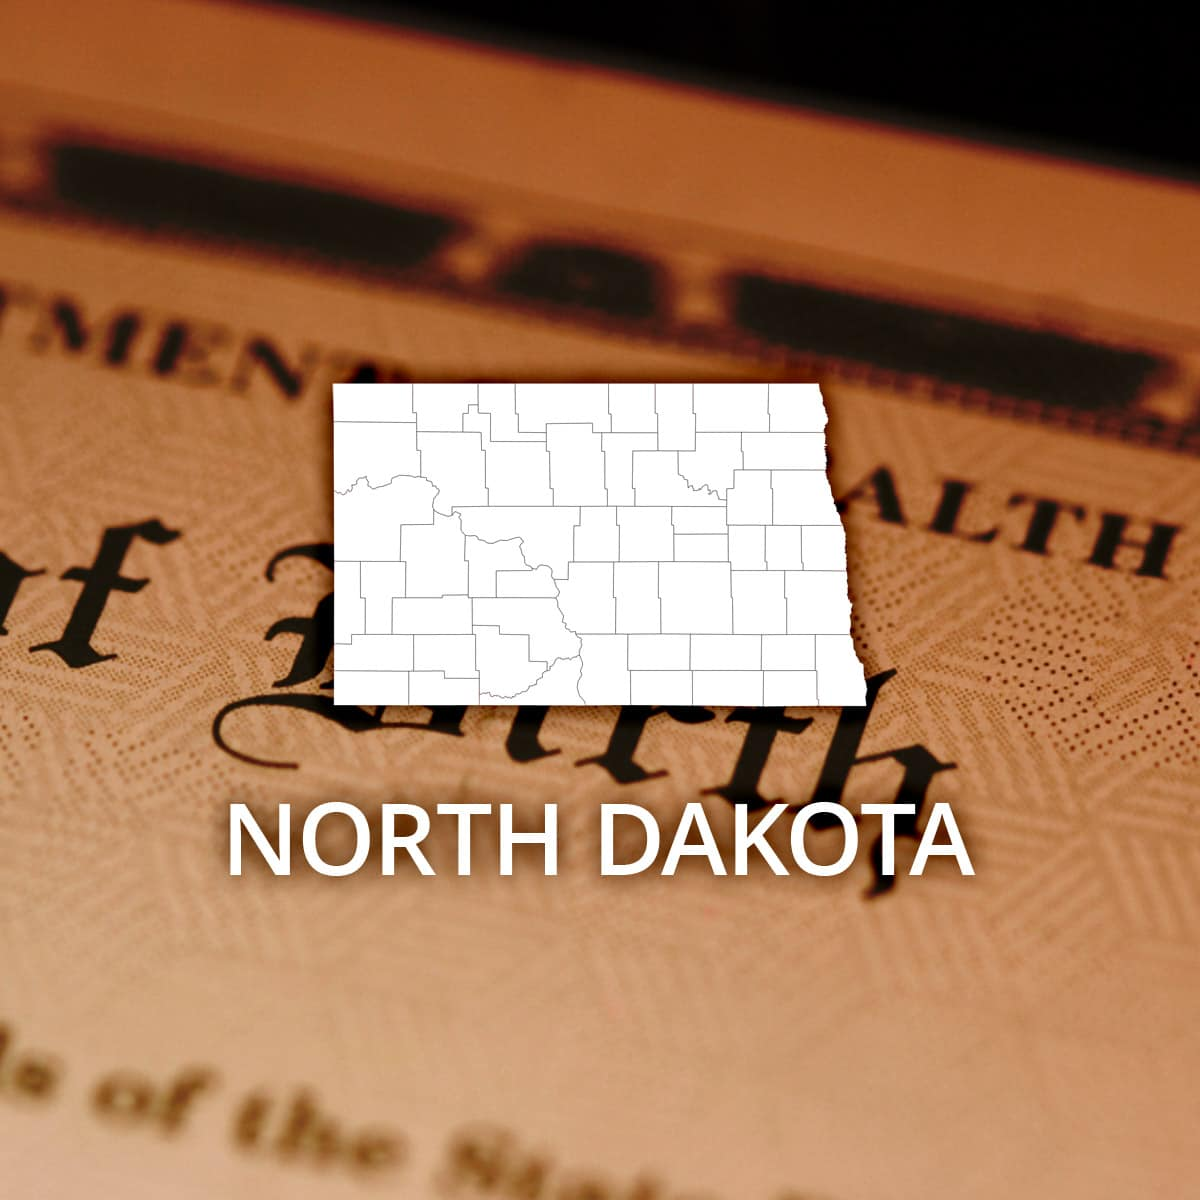 Where to Obtain a North Dakota Birth Certificate